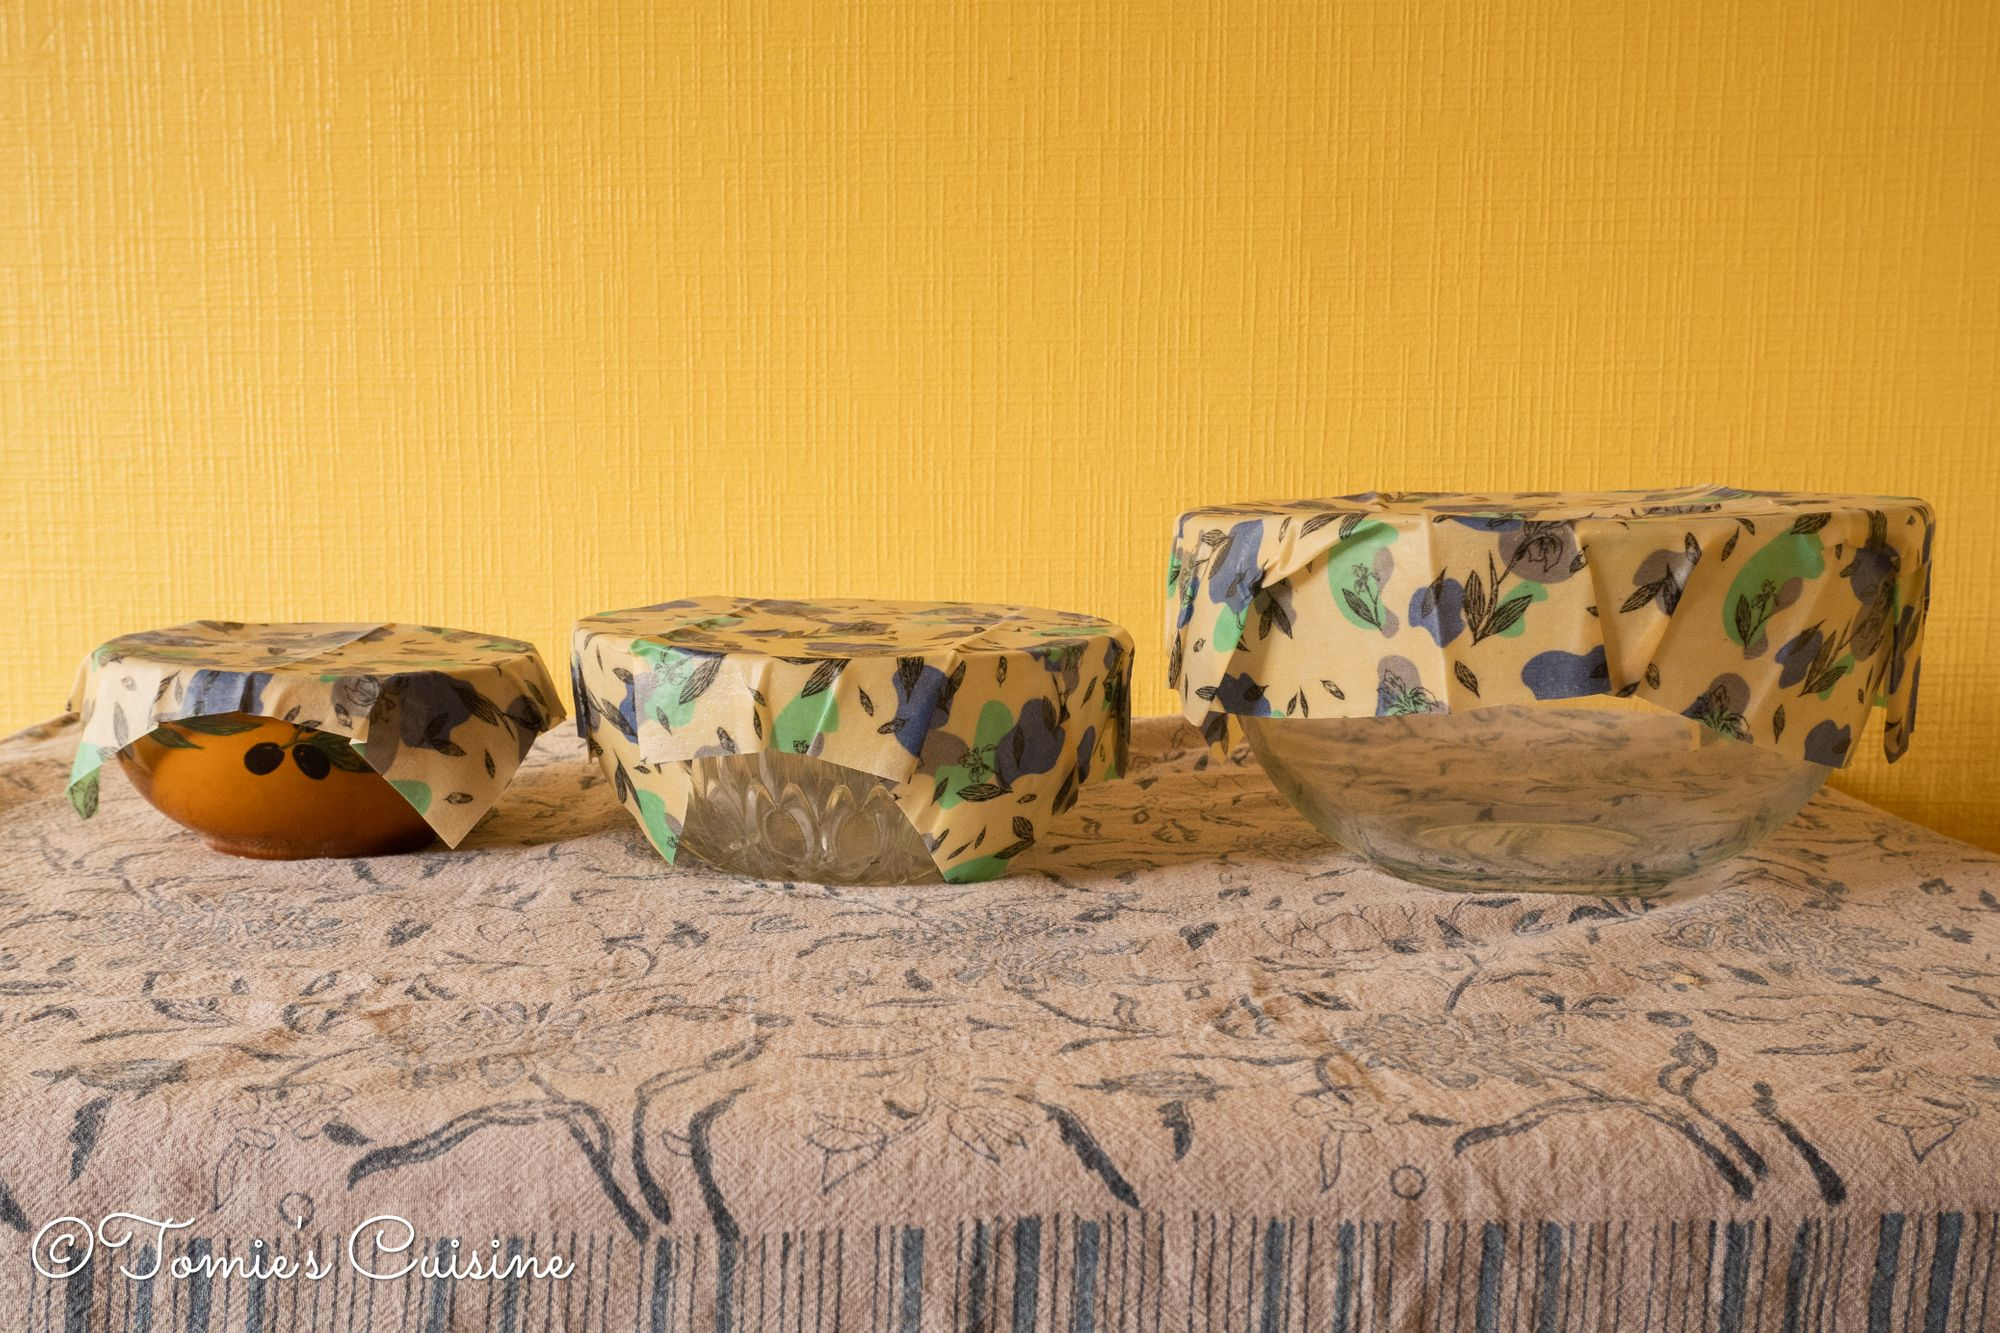 Beeswax wraps adhesion on the three bowls